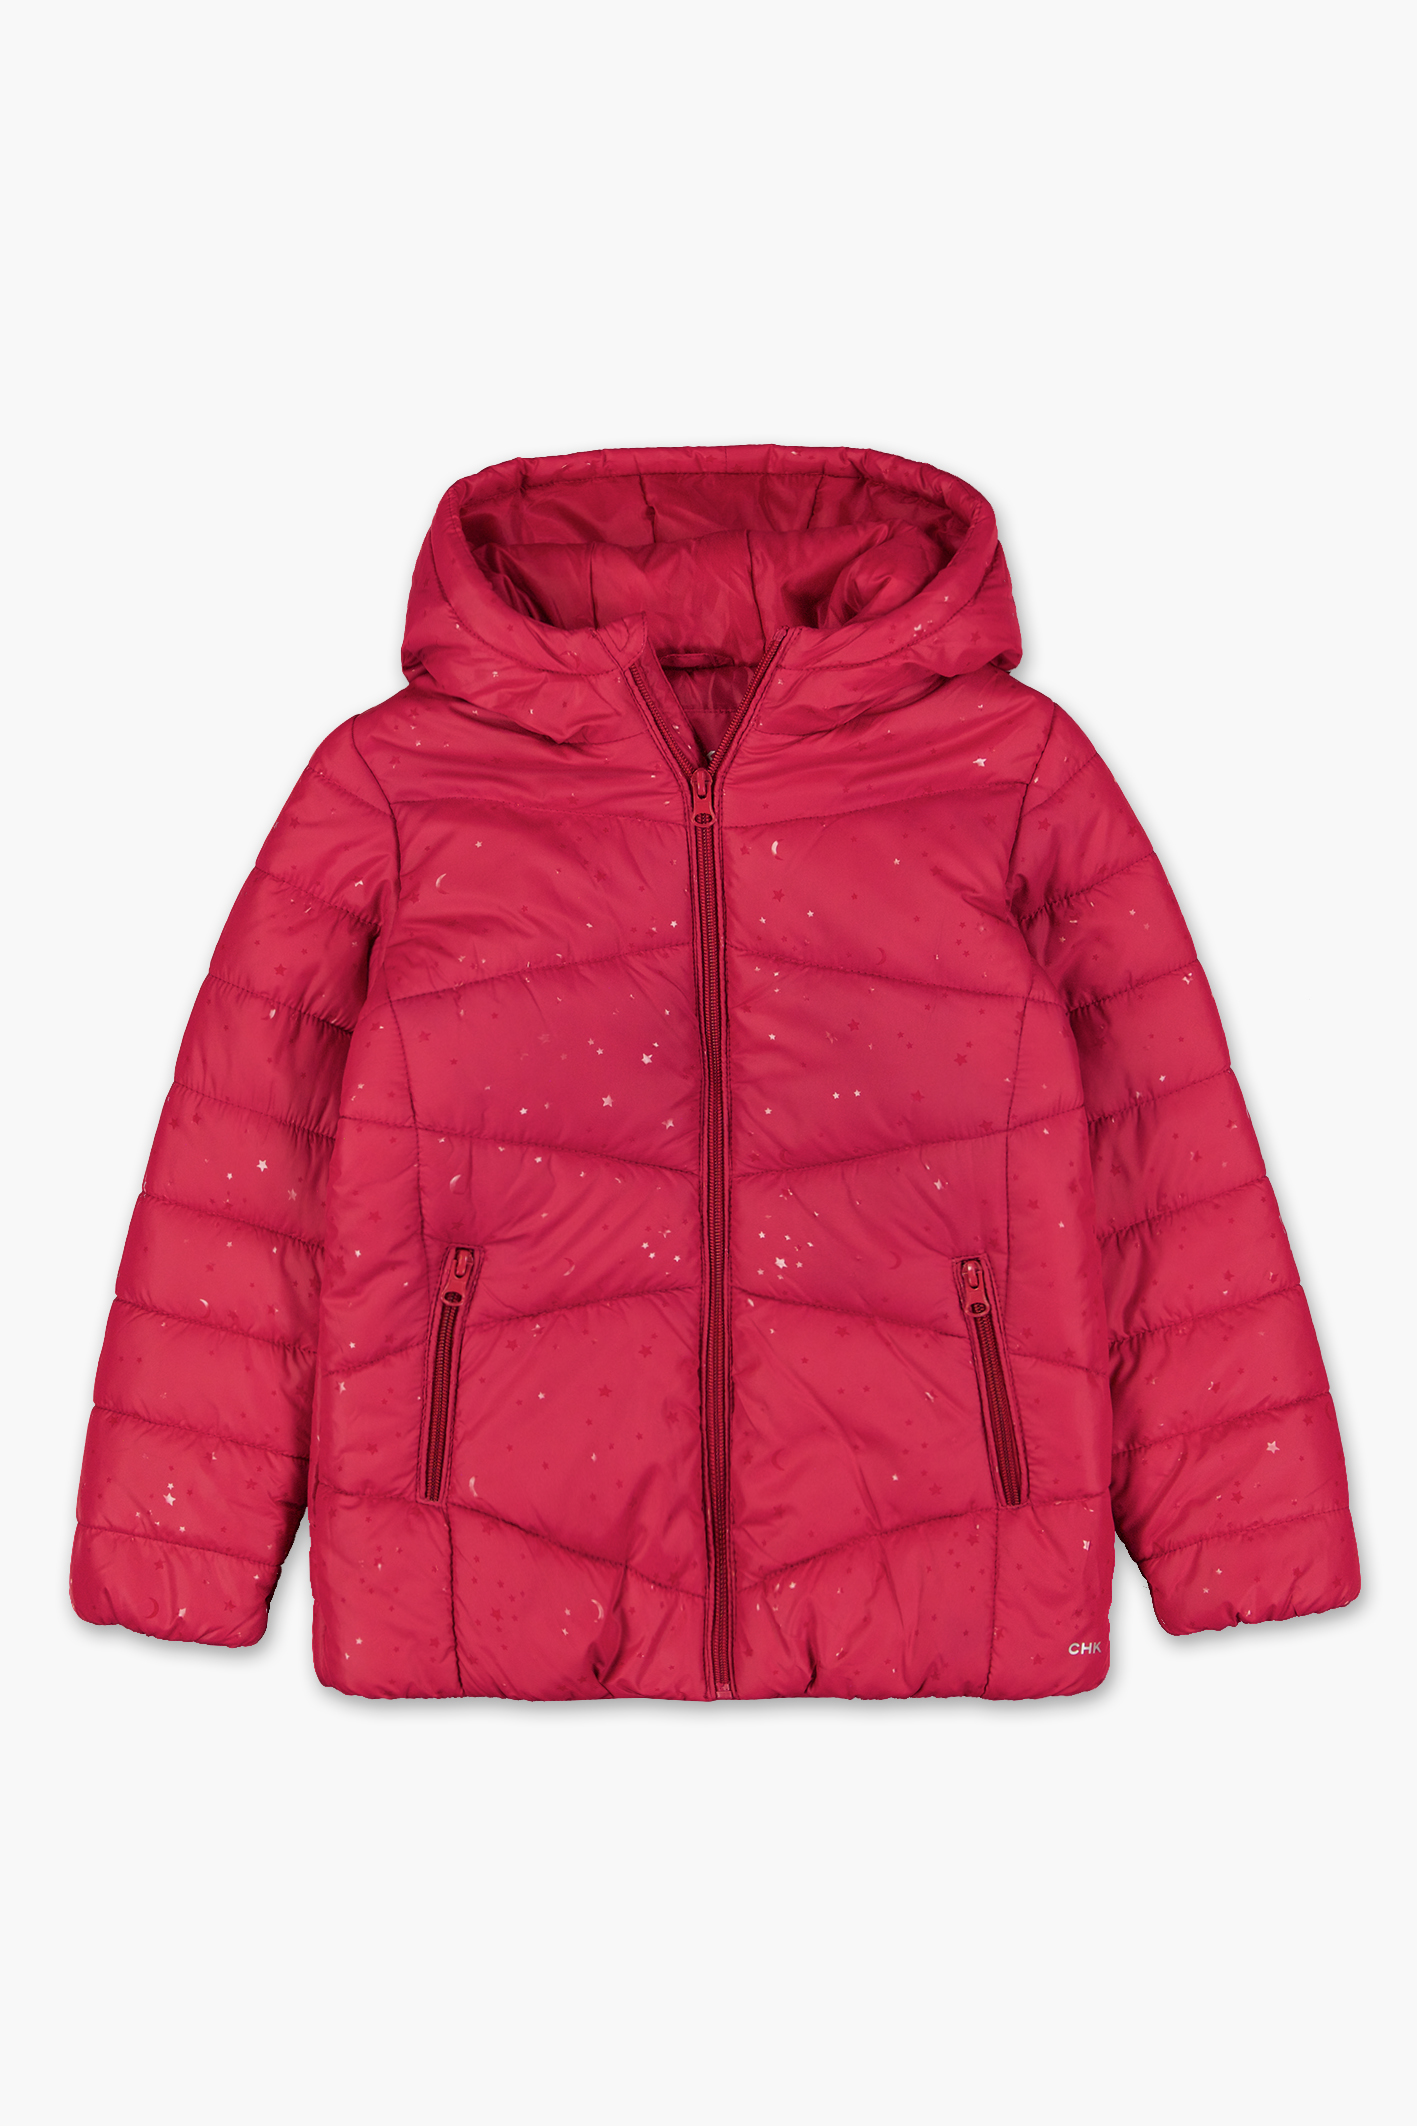 cheeky_campera-stp-star-2-12_29-19-2019__picture-33687